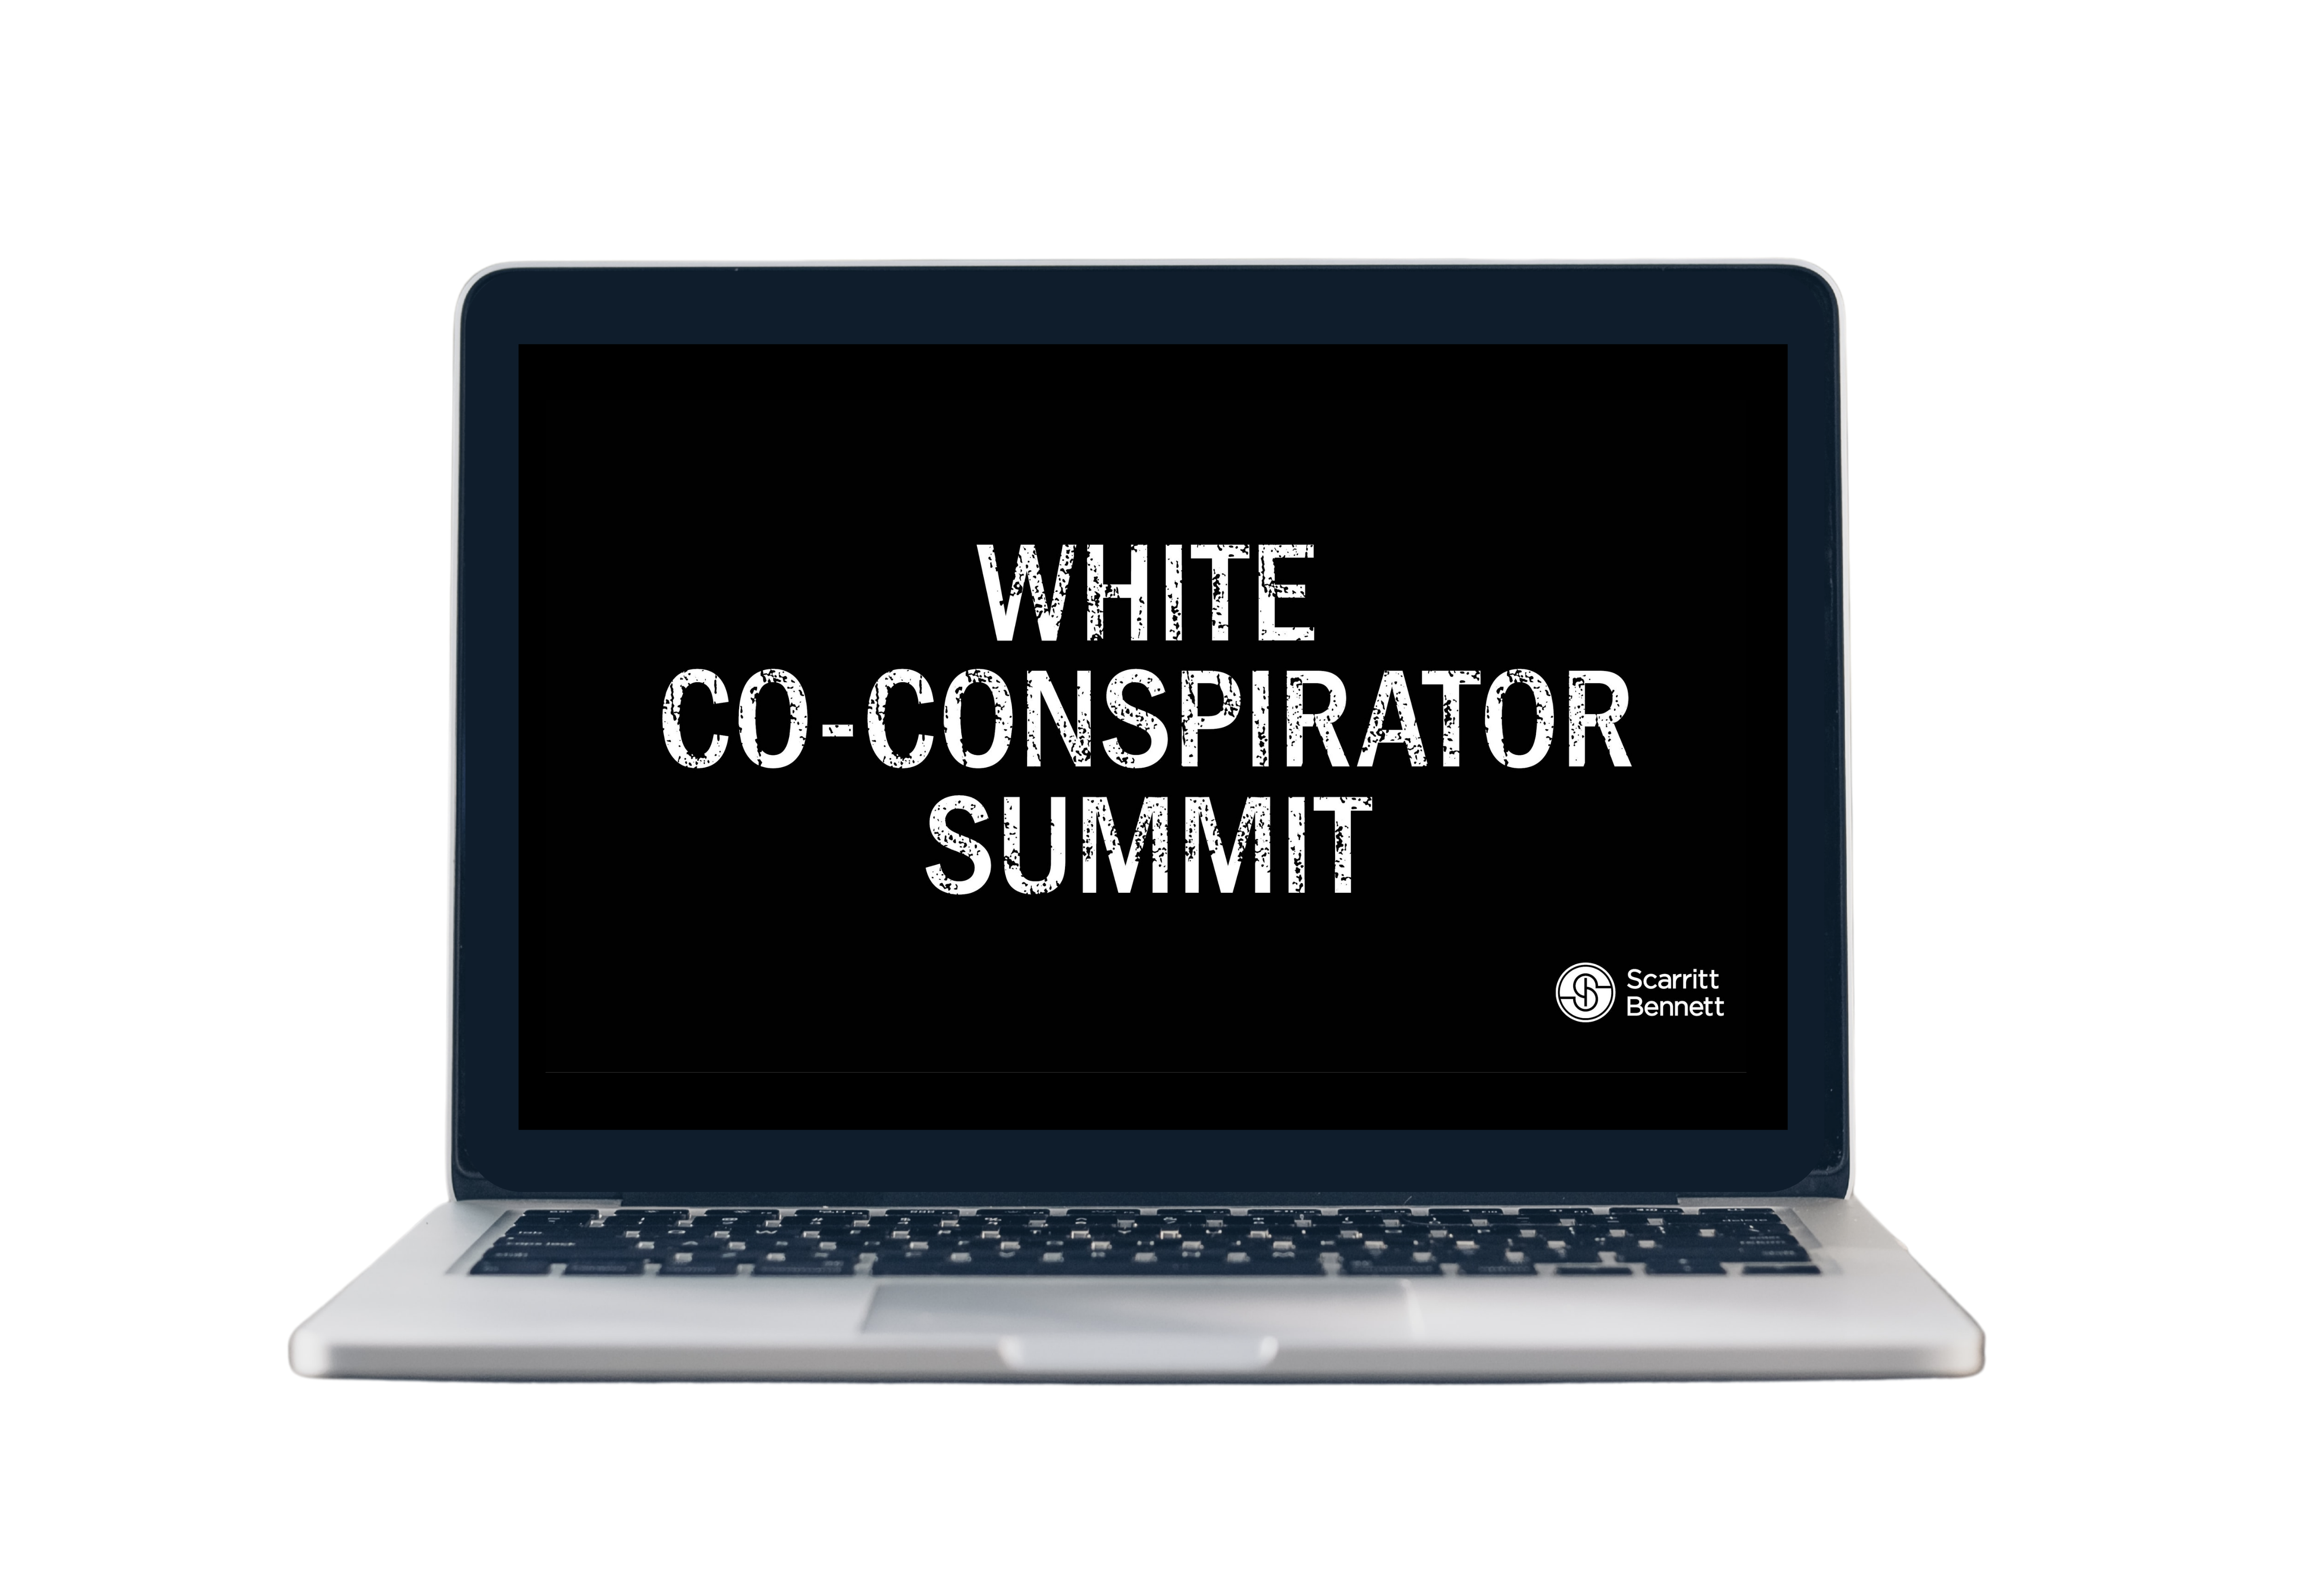 Laptop with screen showing White Co-Conspirator Summit logo